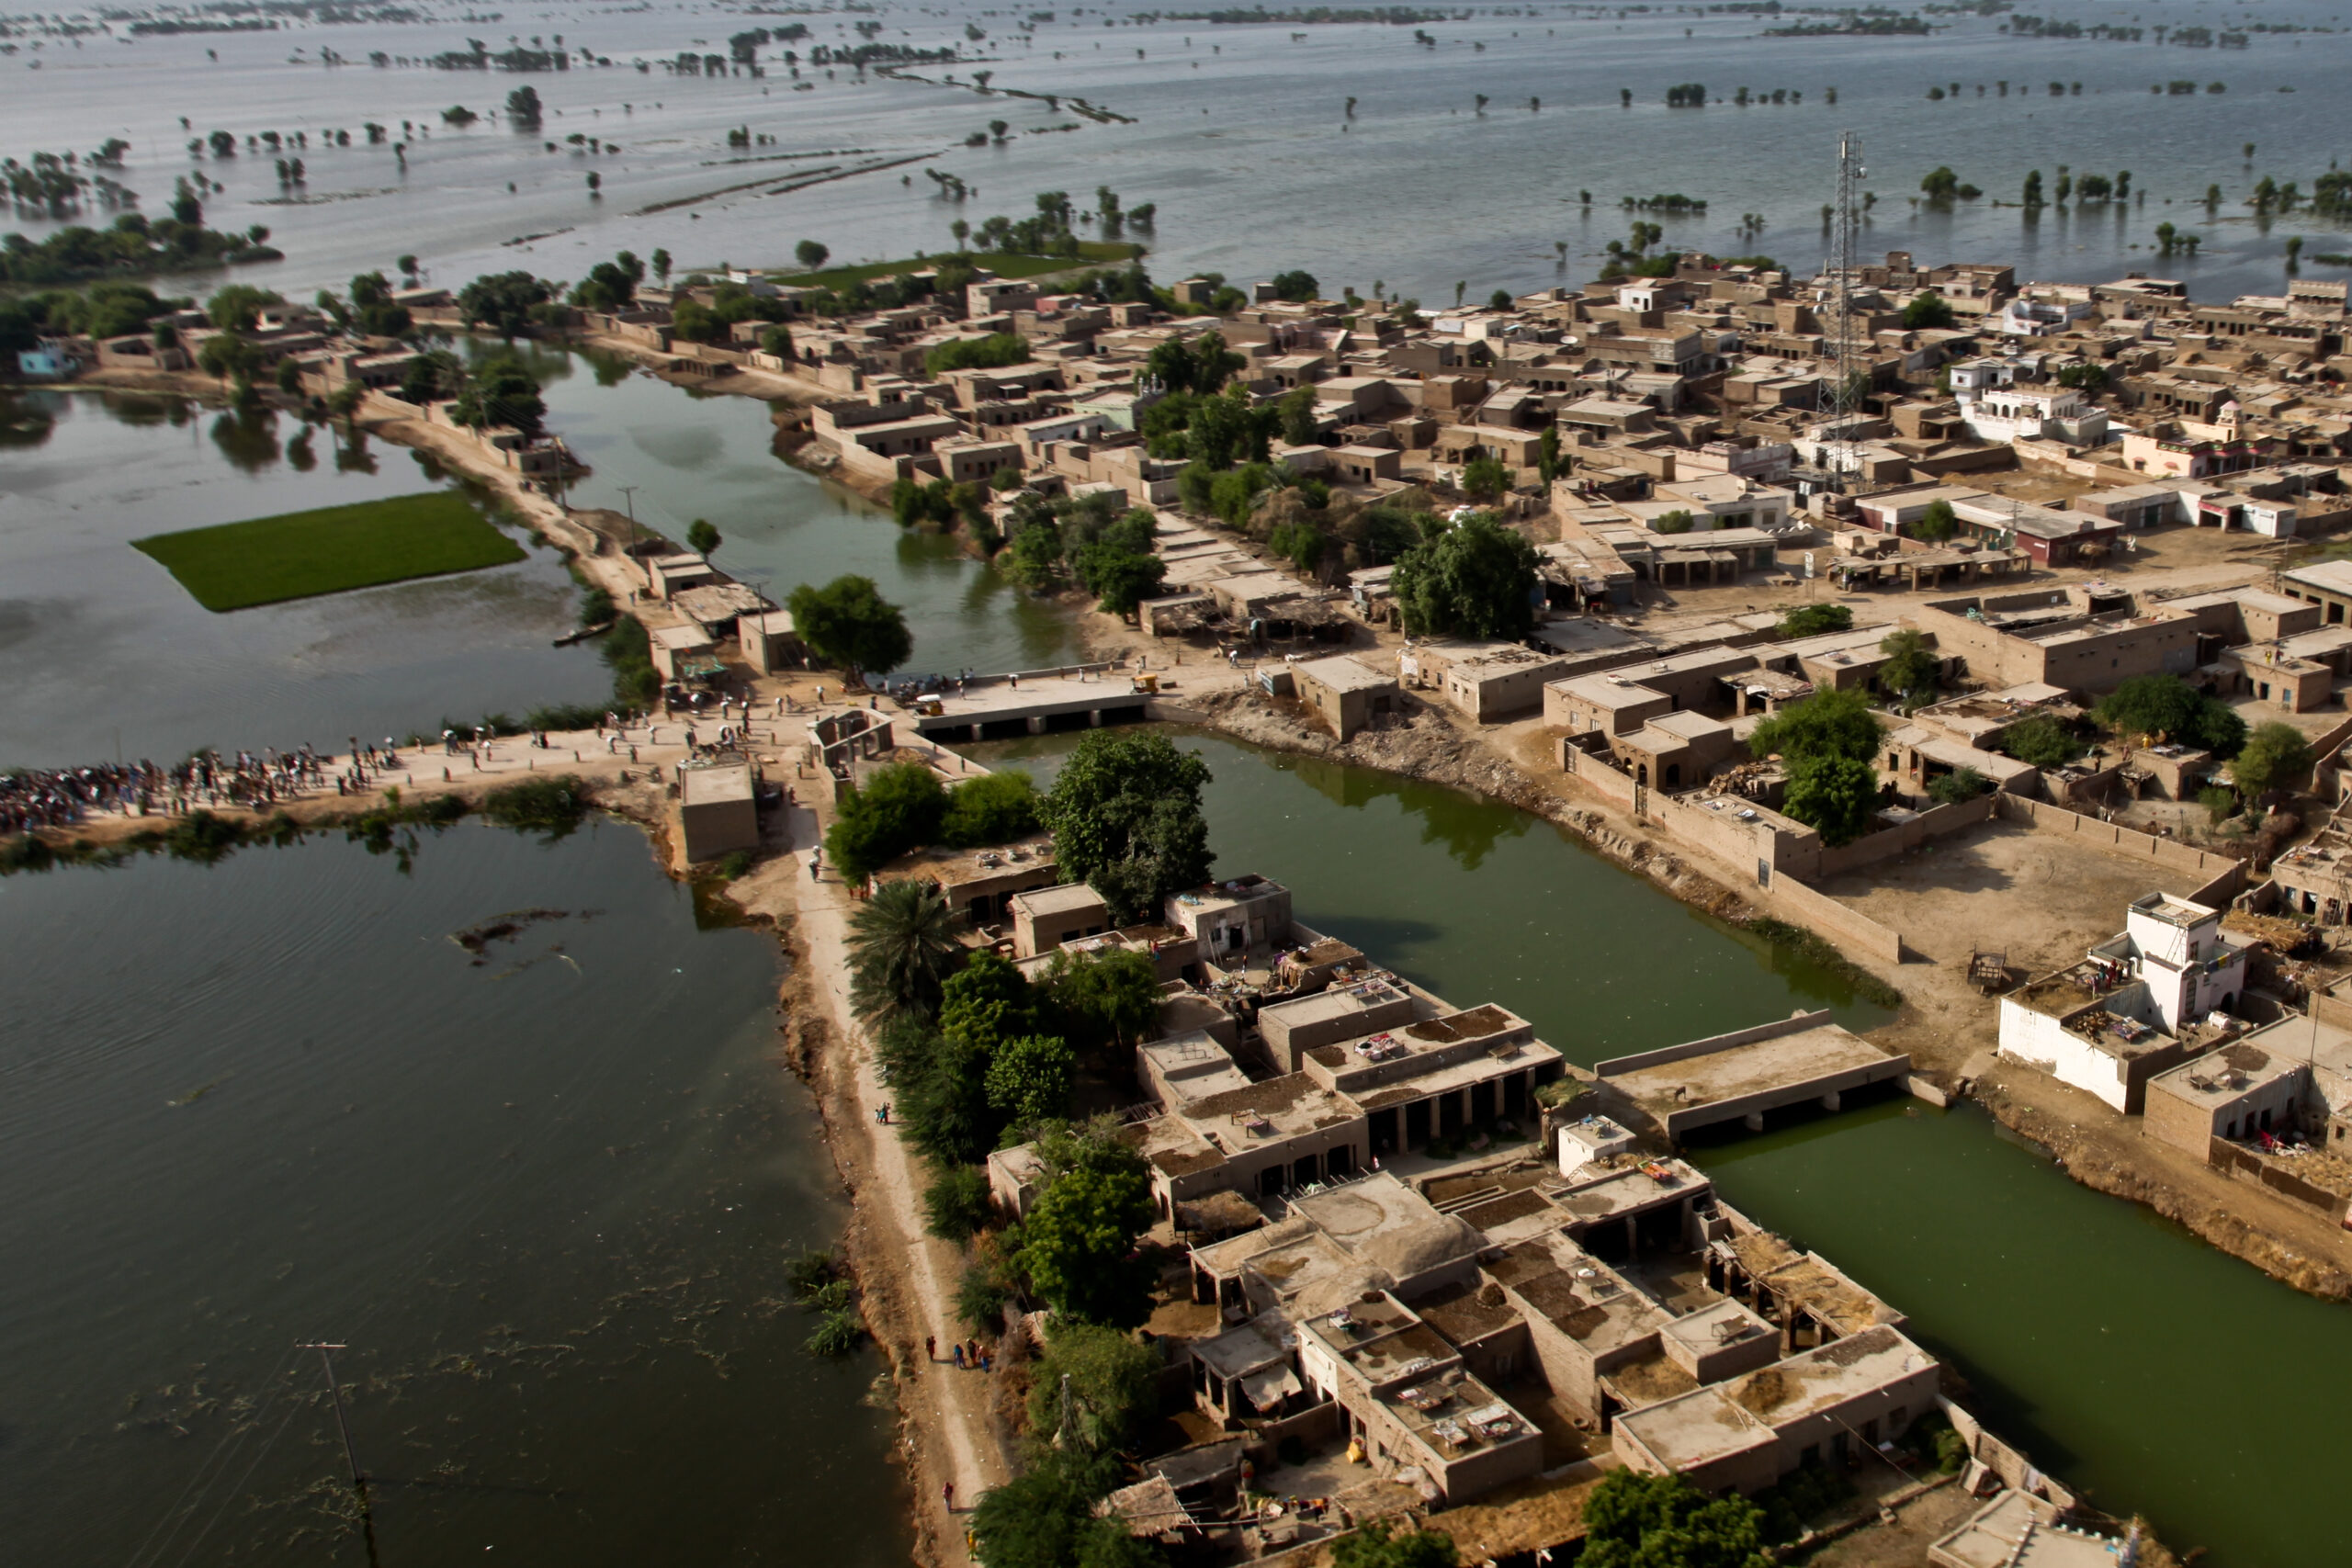 Challenges in flood risk management in urban areas of river deltas in South and South East Asia (WP1257)